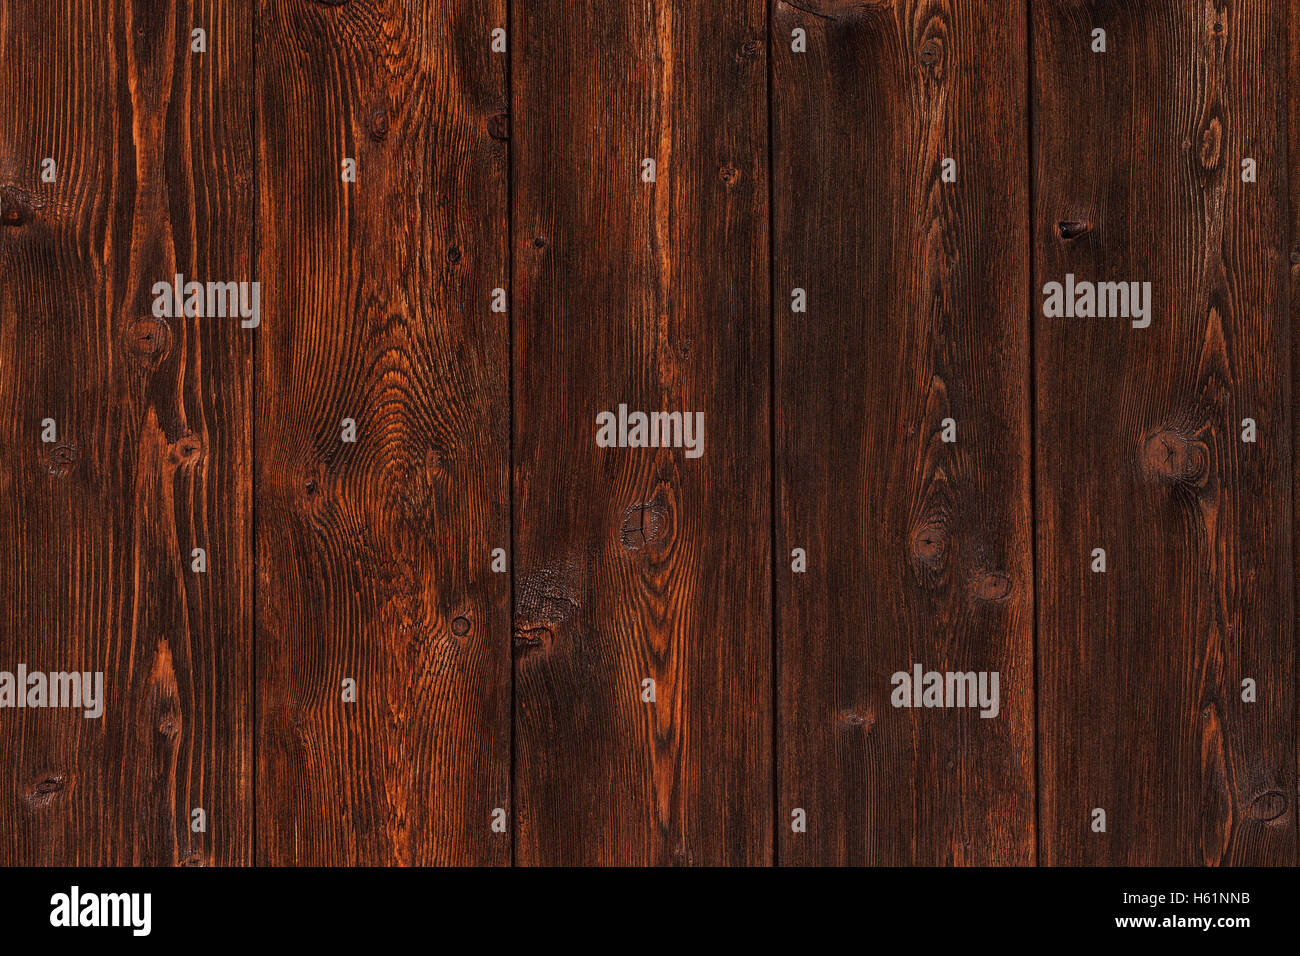 plank as background or depositphotos stock use texture desk to wood photo